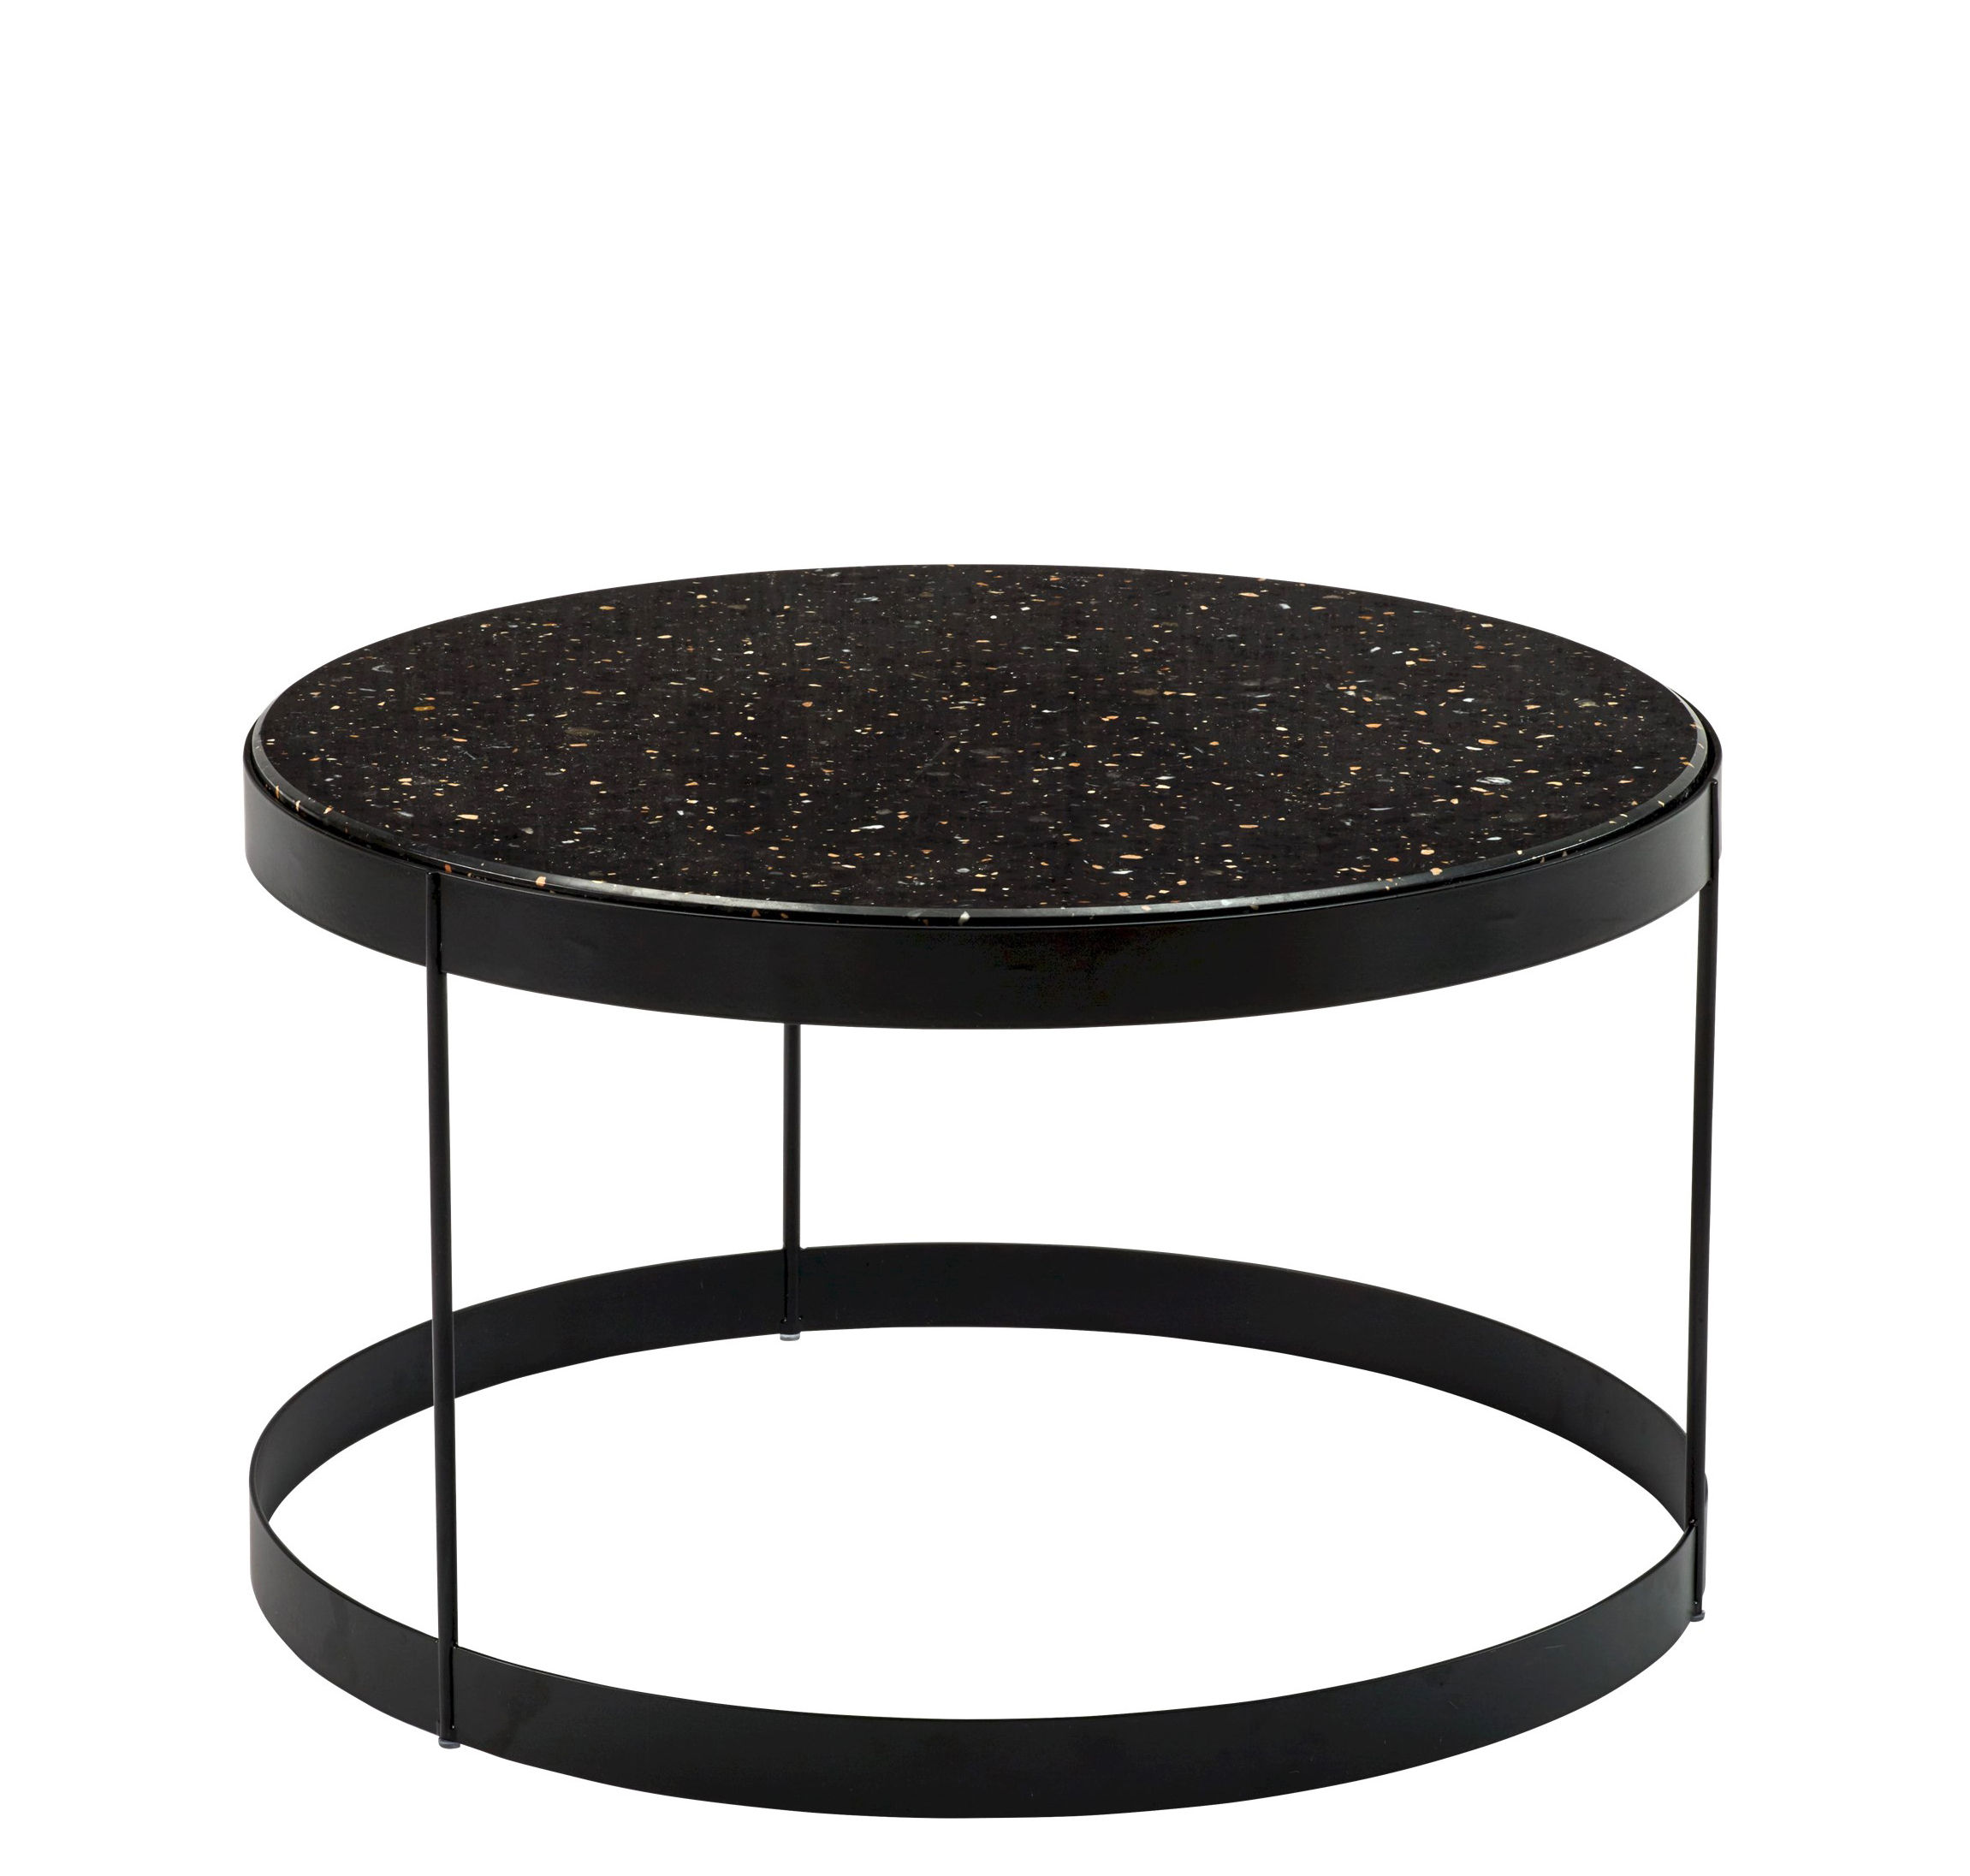 Round 3 Round Coffee Table Made Of Metal Cm ø80x23h: Coffee Table Drum By Bolia